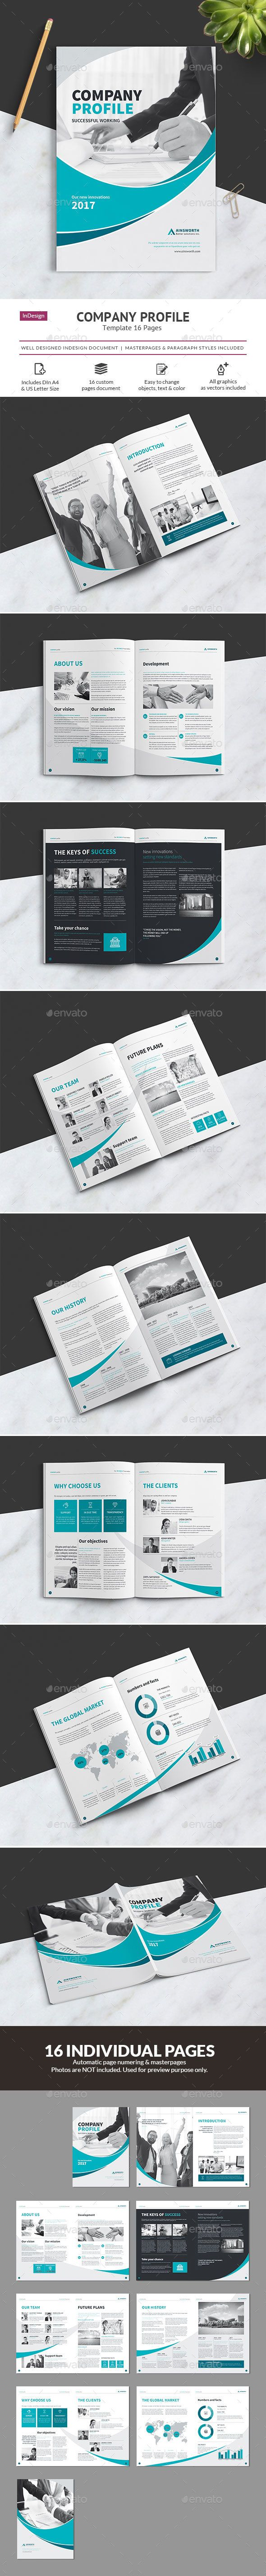 Company Profile Design Template - Brochures Design Print Template InDesign INDD. Download here: https://graphicriver.net/item/company-profile/19398496?ref=yinkira